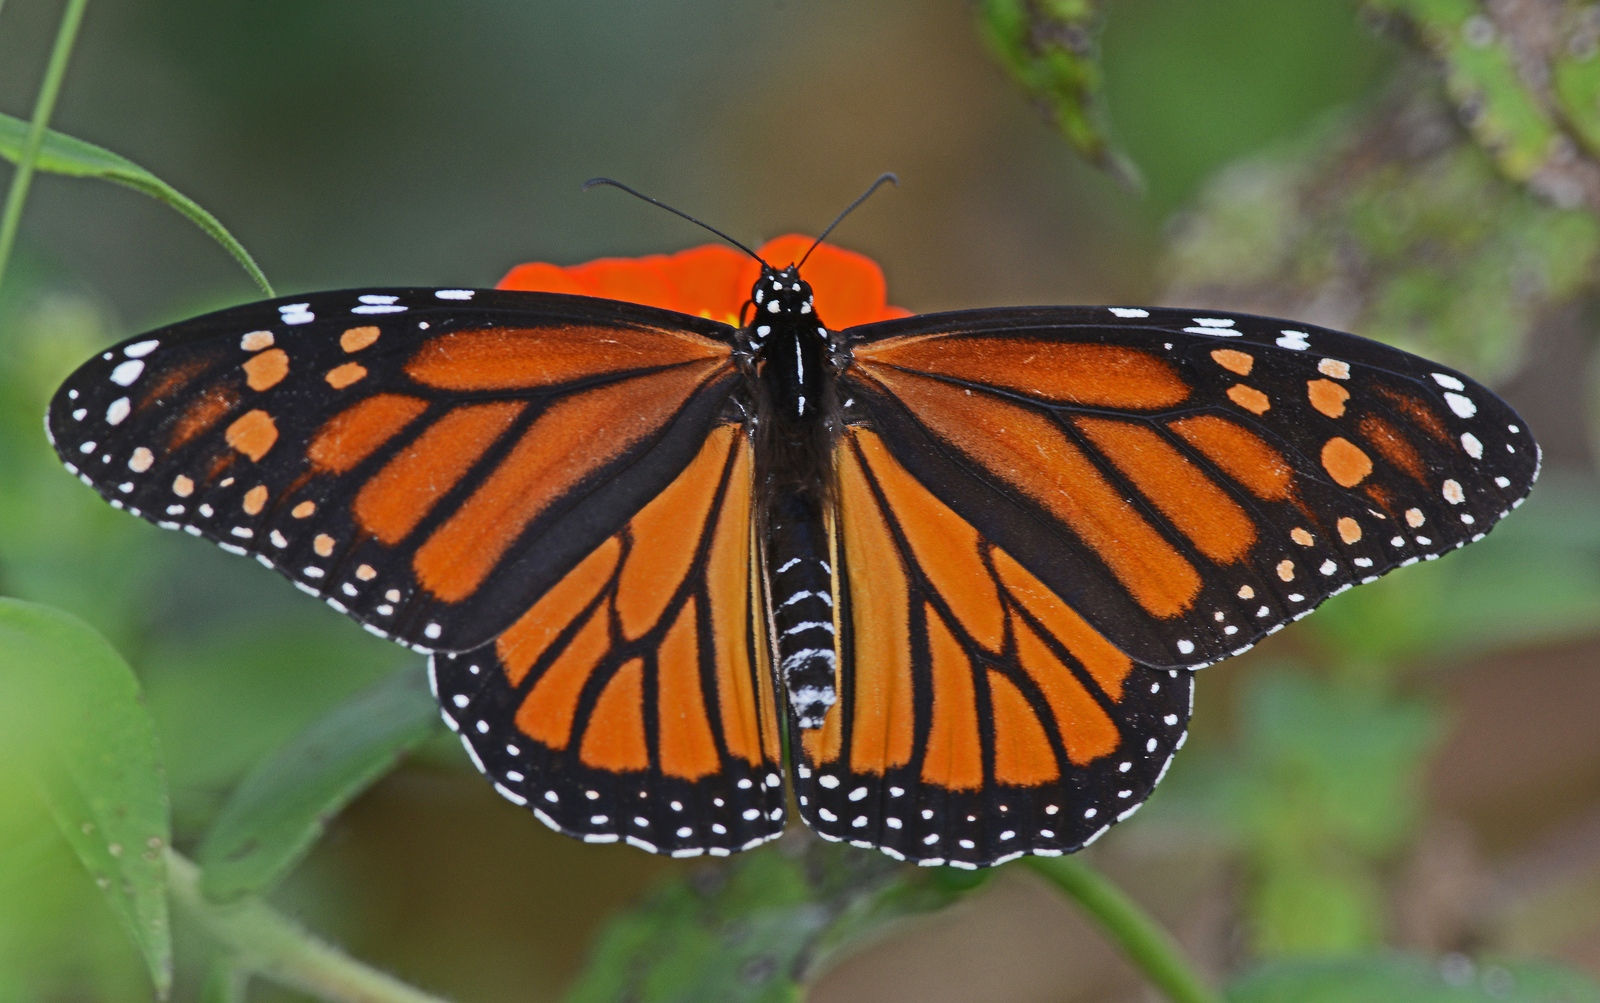 The Alarming Disappearance of Monarch Butterflies ...